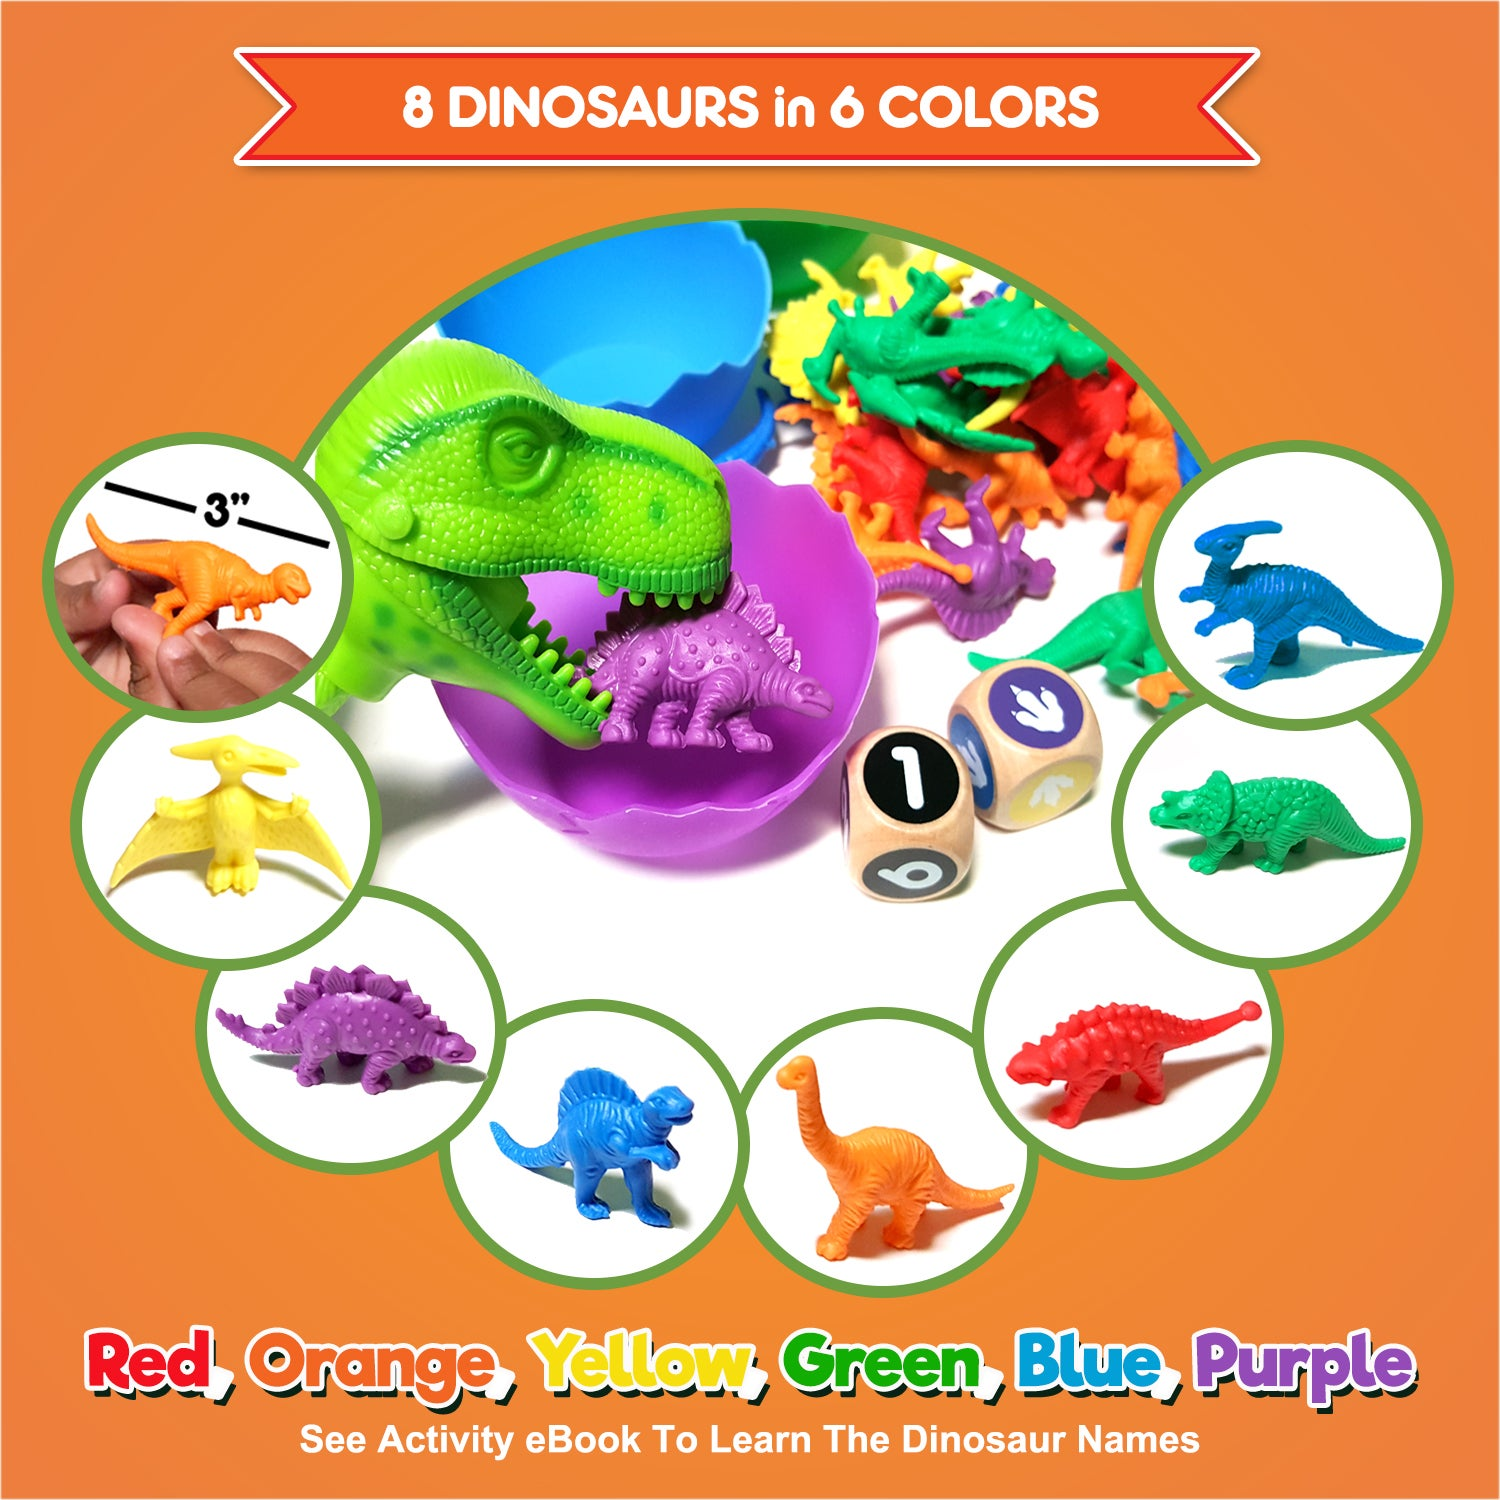 Counting Dinosaurs with Matching Sorting Cups Educational Cards Color Sorting and Counting Activity Set Fine Motor Skills Games Pre-School STEM Learning Toys for Kids Toddlers 2 3 4 5 Years